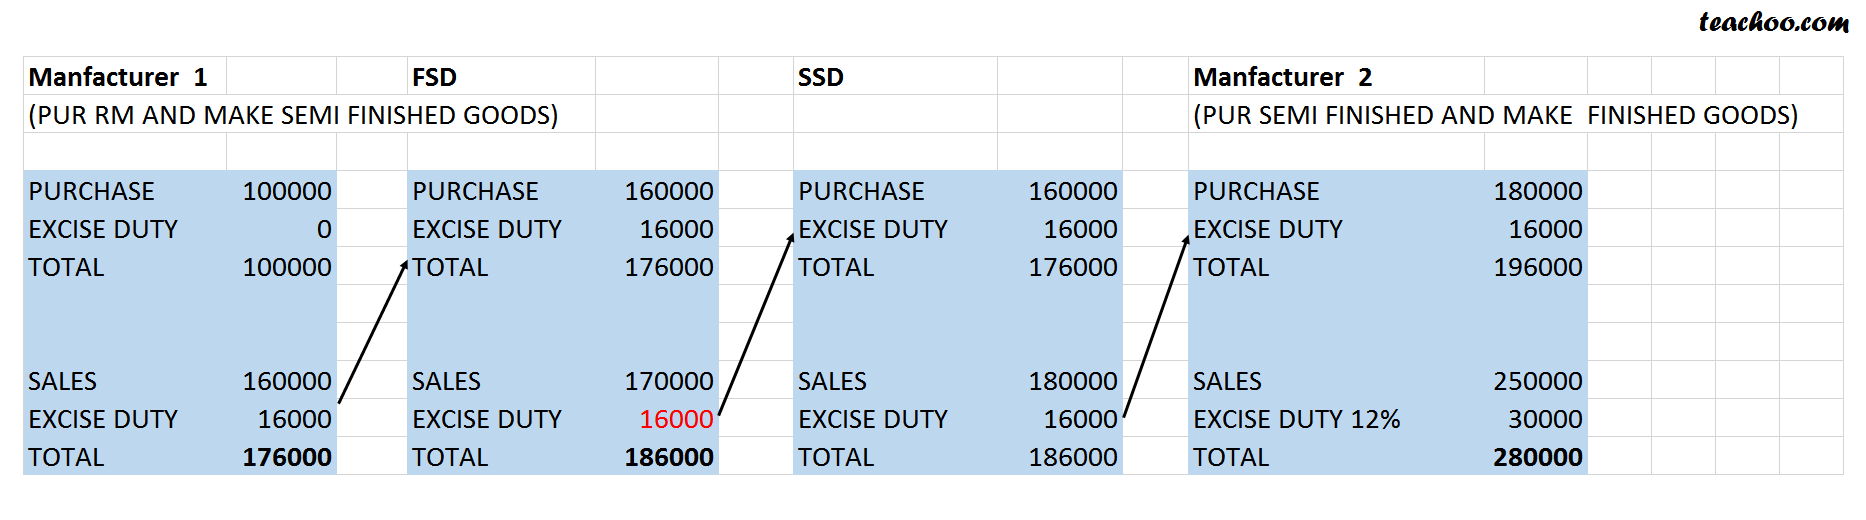 Concept of second stage dealer - Excise - Concept of First Stage Dealer